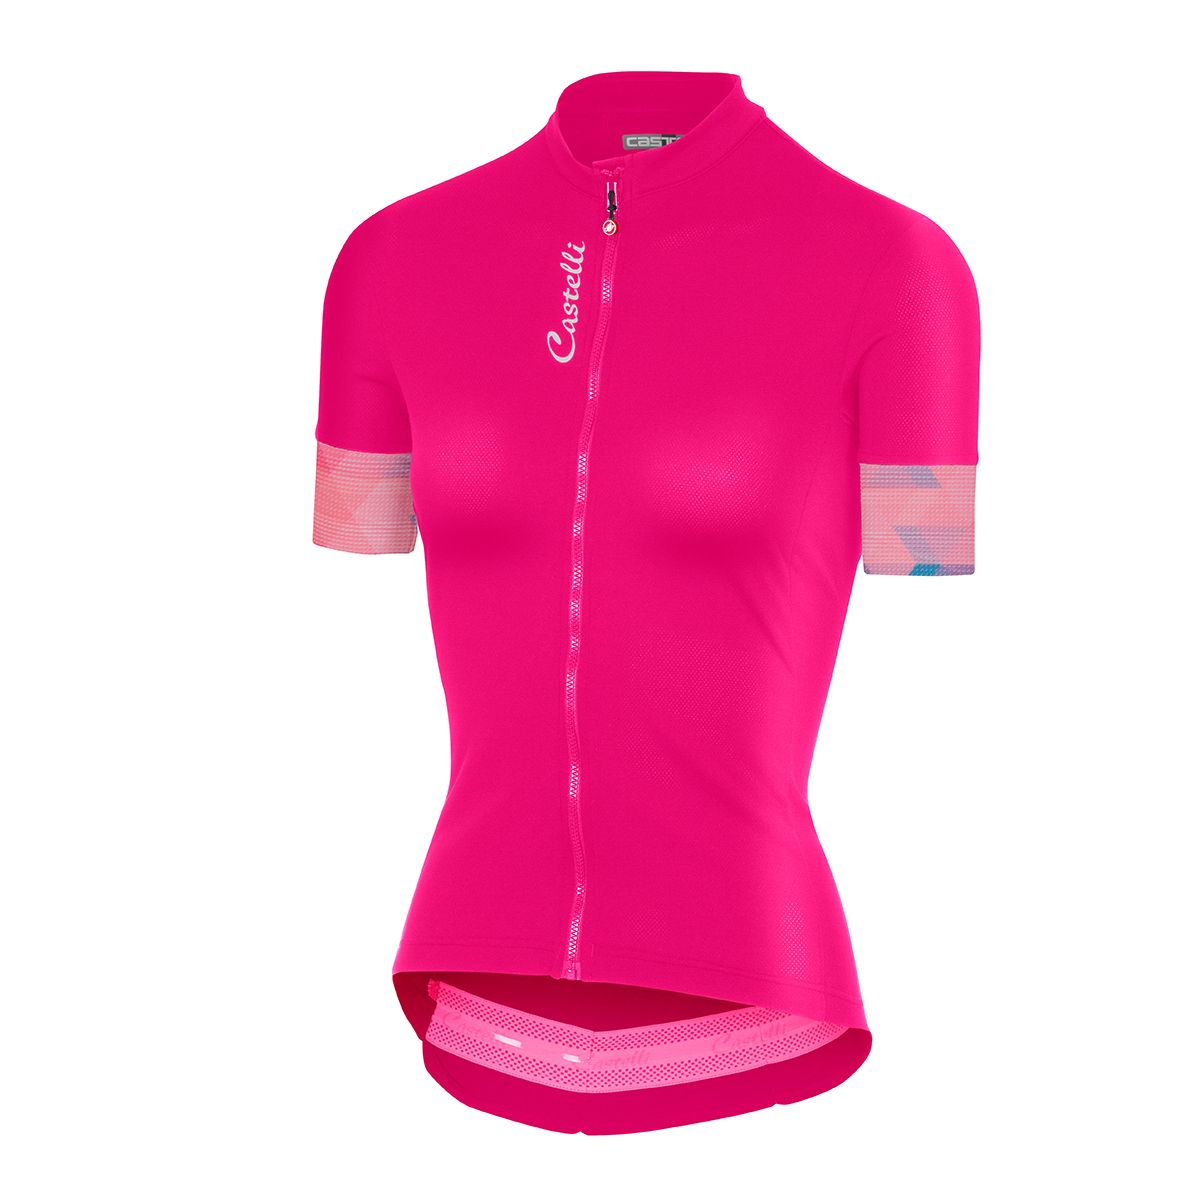 ANIMA 2 JERSEY FZ for women